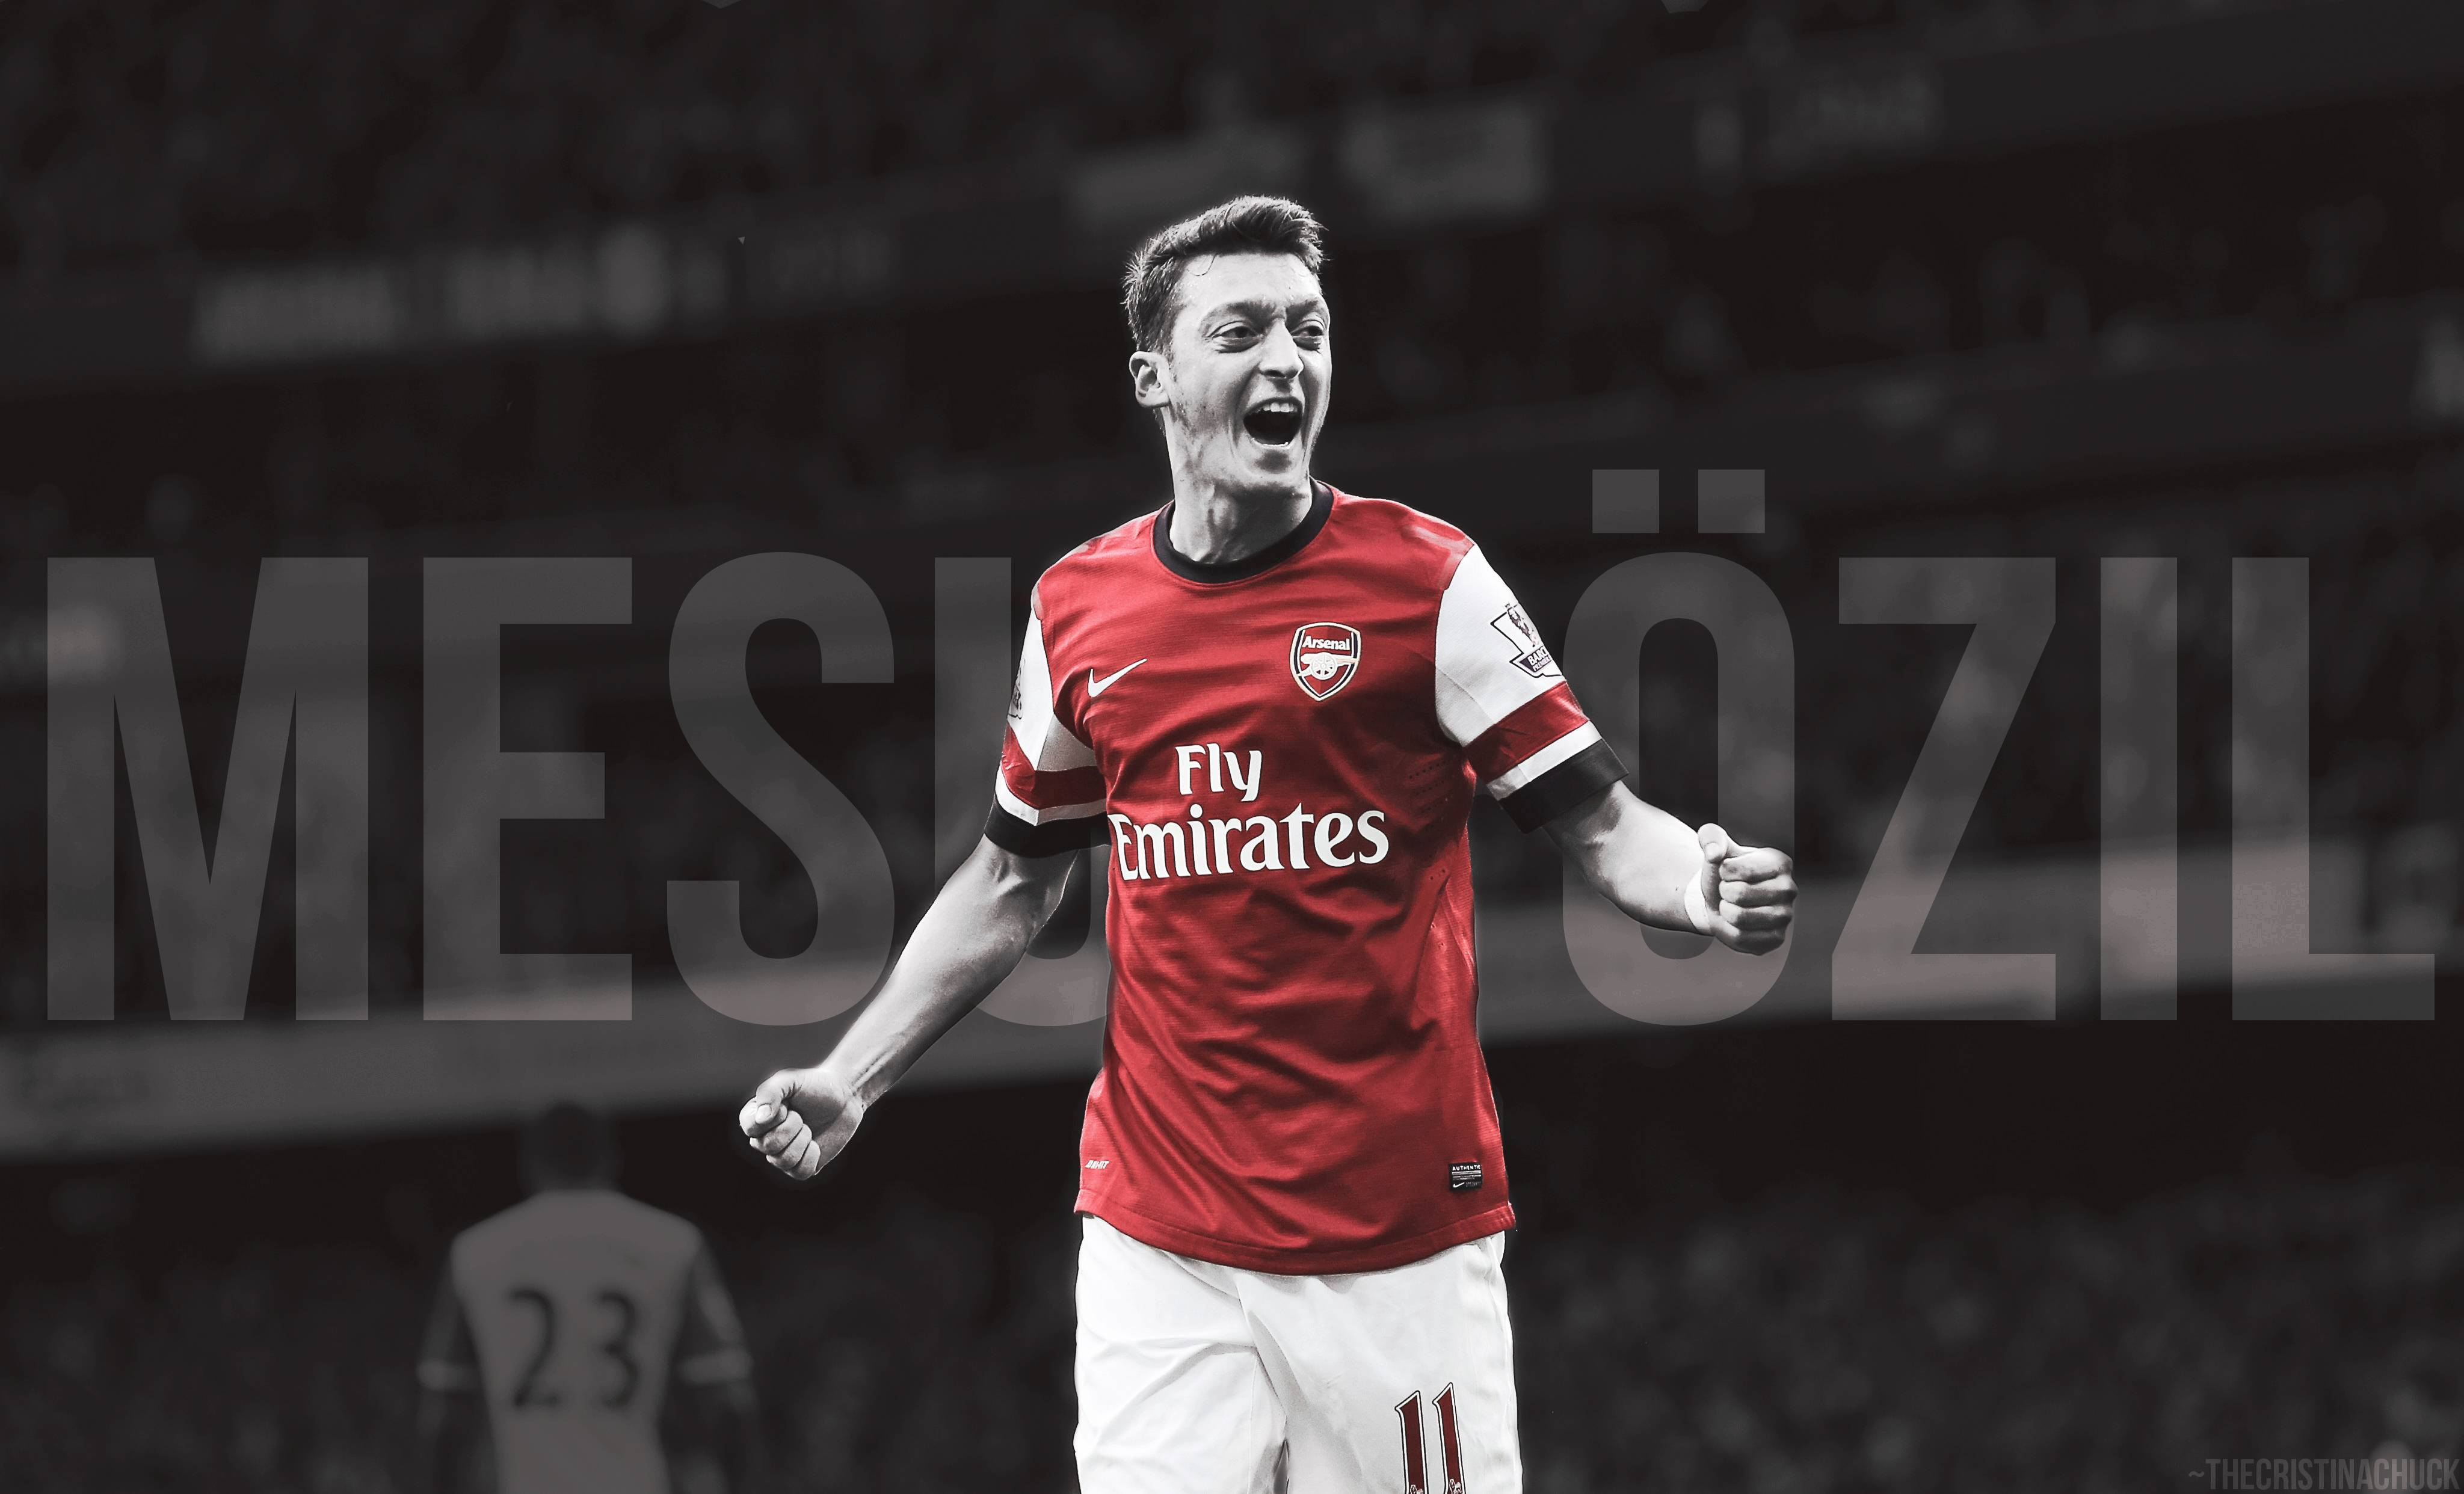 Mesut Ozil Arsenal Goal Wallpapers HD, Wallpaper, Mesut Ozil